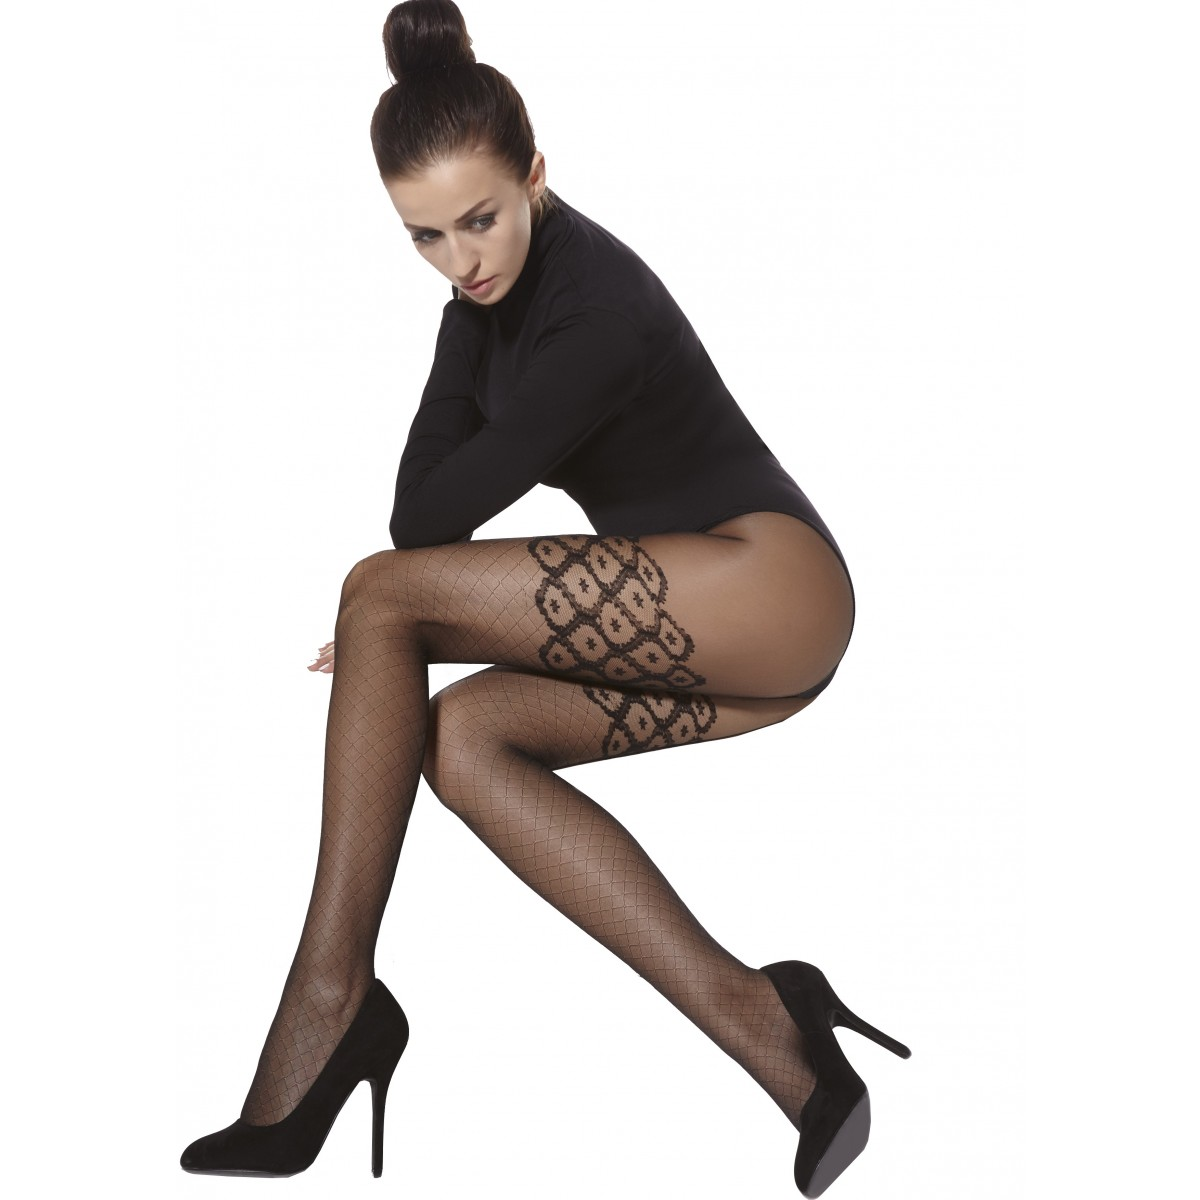 b414a241b09 Lucy 20 Denier Black Patterned Tights by Adrian Aurellie-store ...